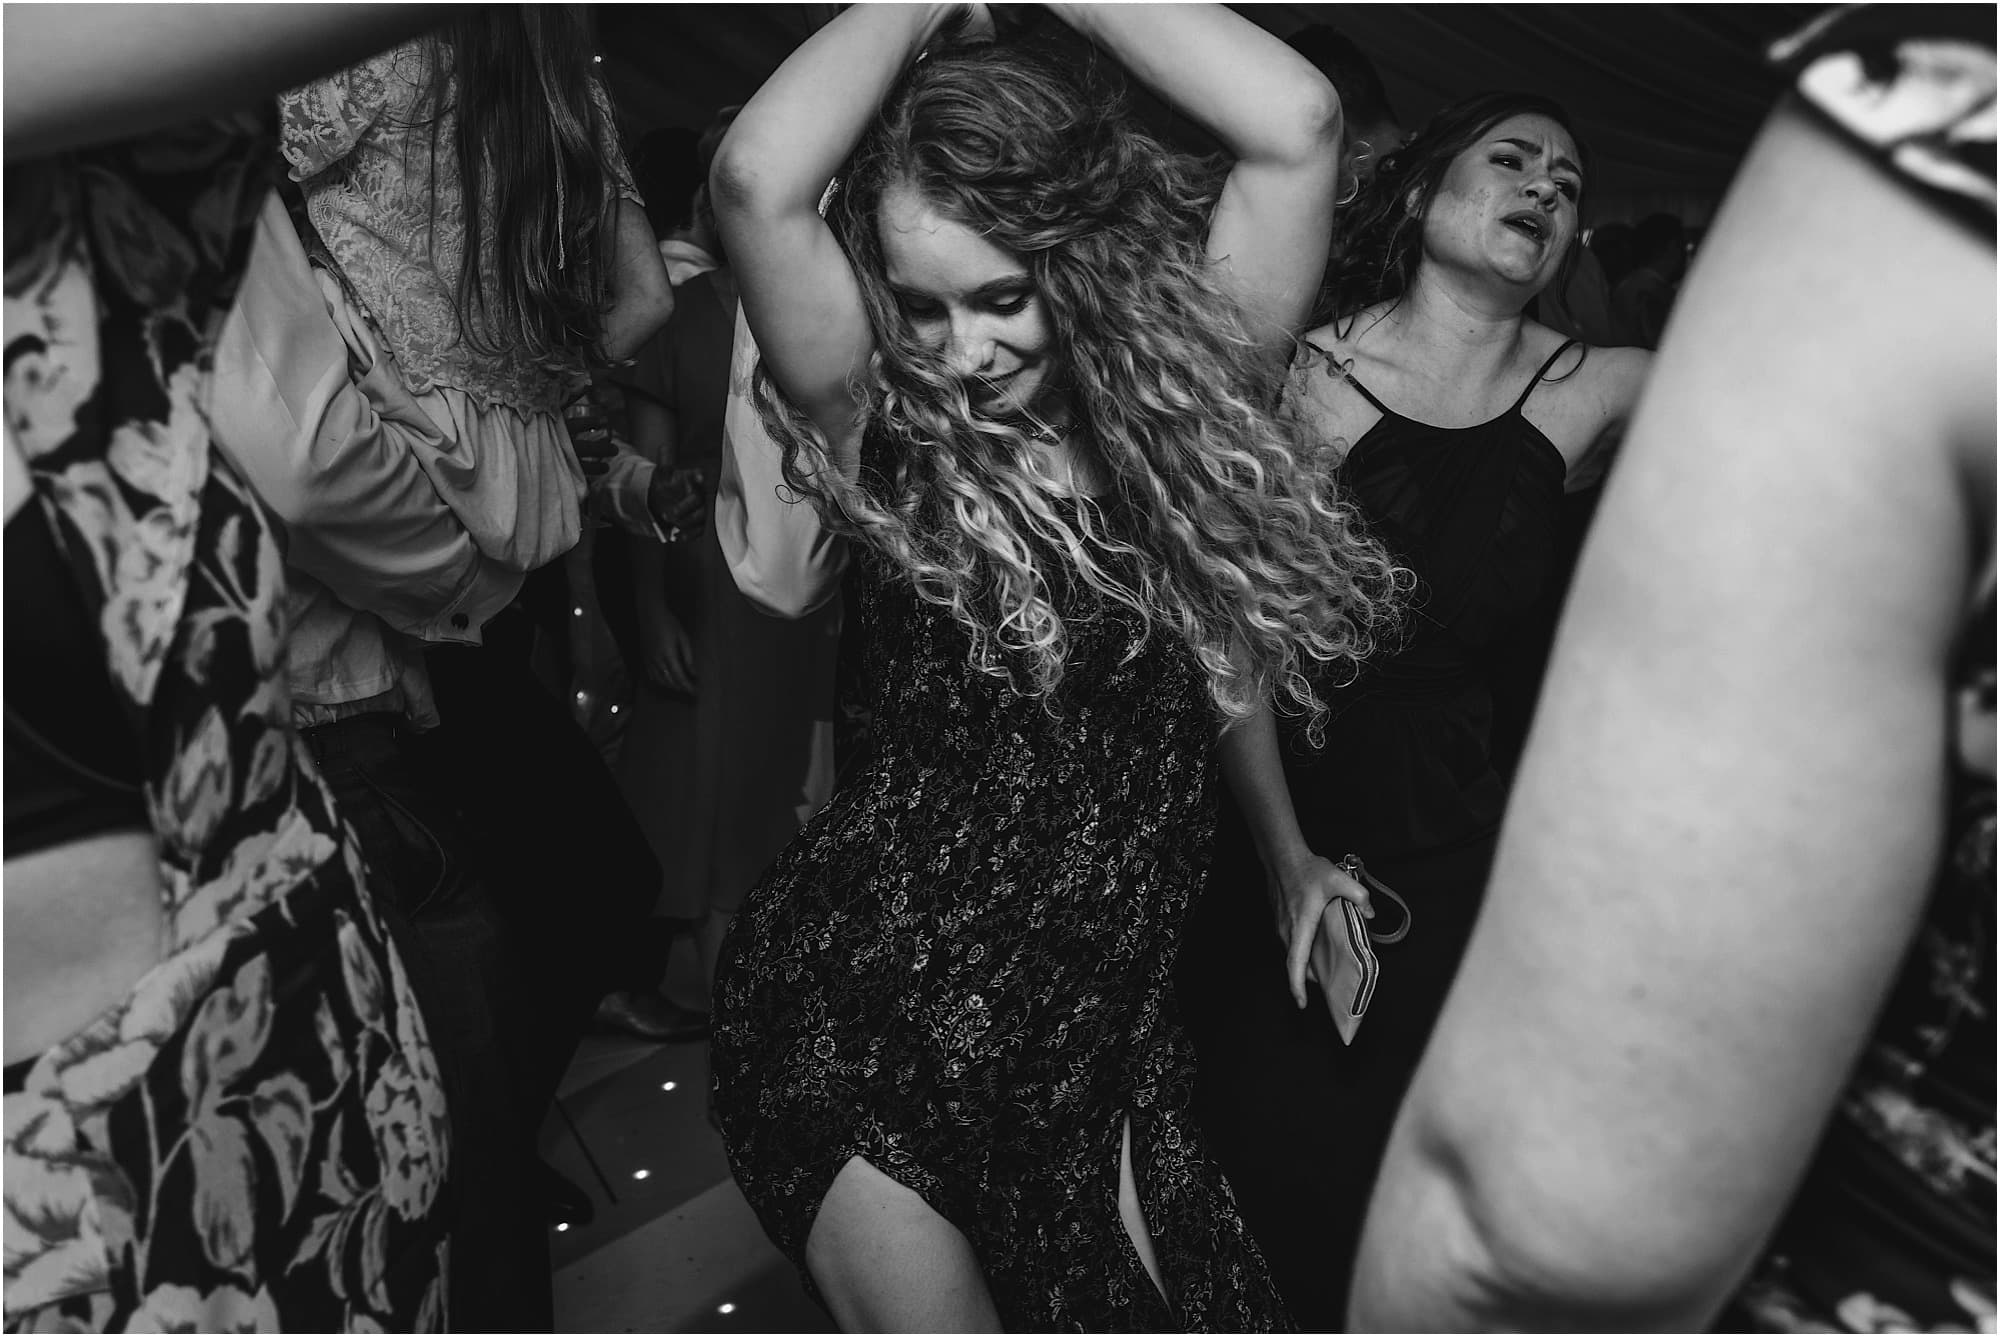 dancing girl in black and white